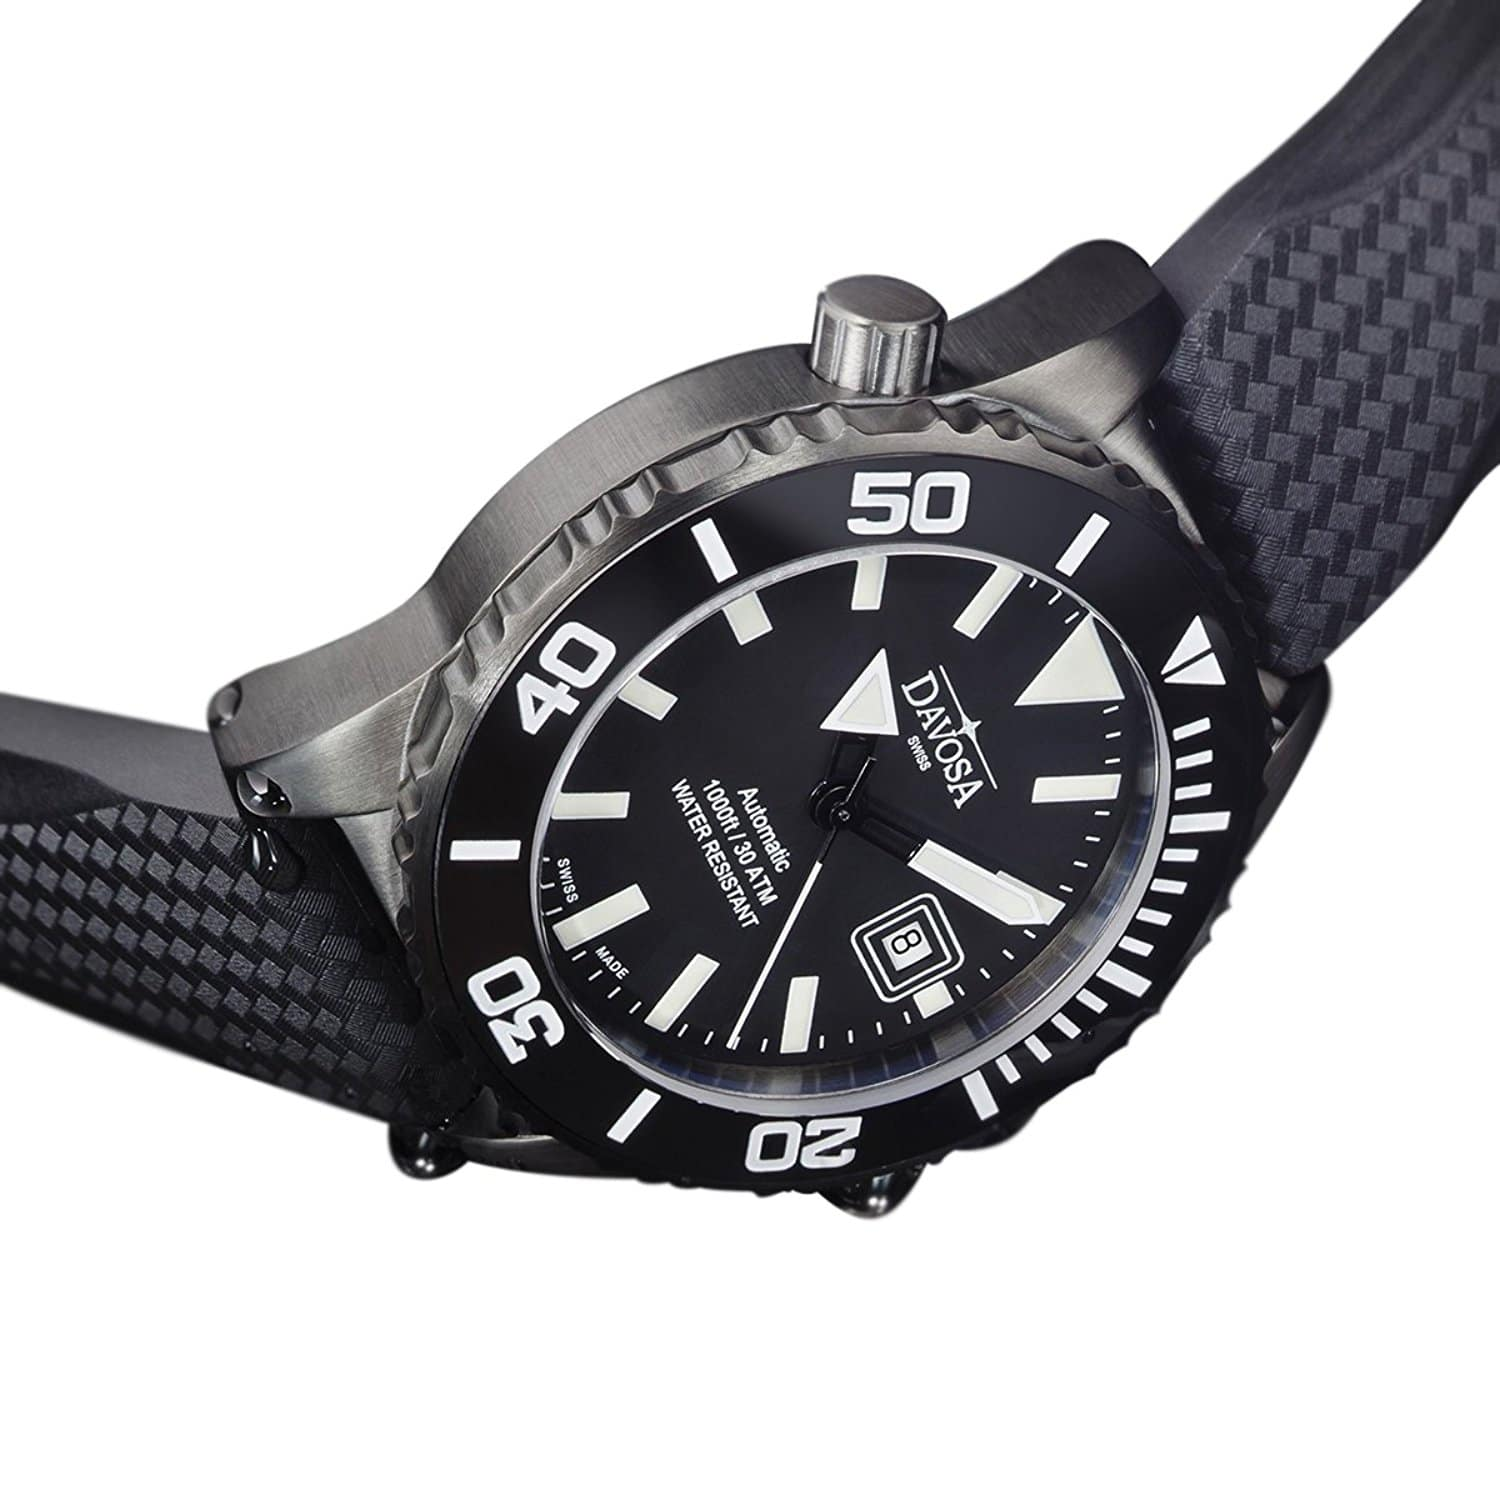 Swiss Made DAVOSA Men´s Diver 300m Automatic Gun Metal PVD Mod.No.16149880 (161.49.880)